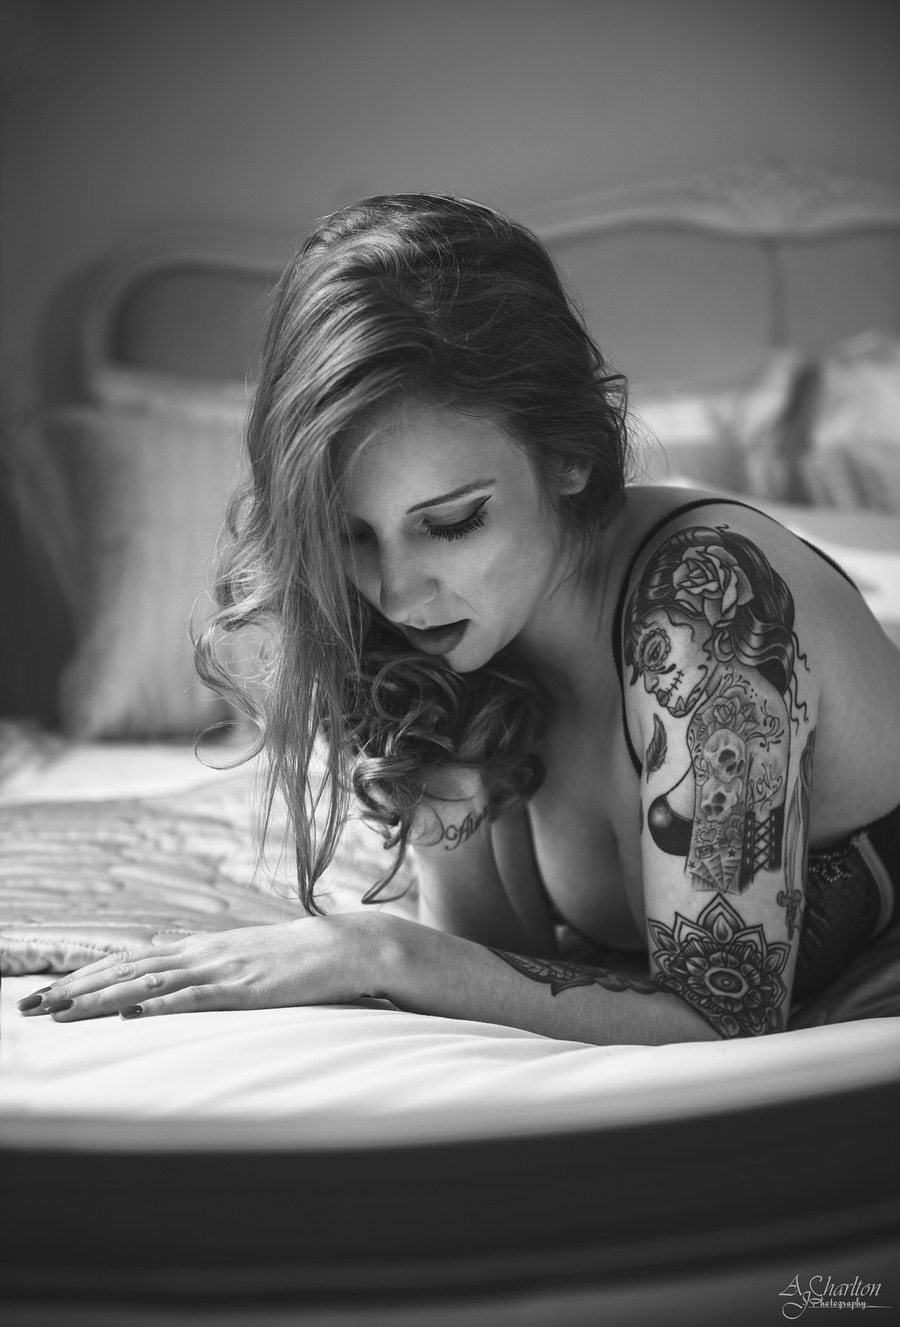 Red in B&W / Photography by AJ Charlton, Model Alexa Edwards / Uploaded 20th August 2016 @ 10:59 AM